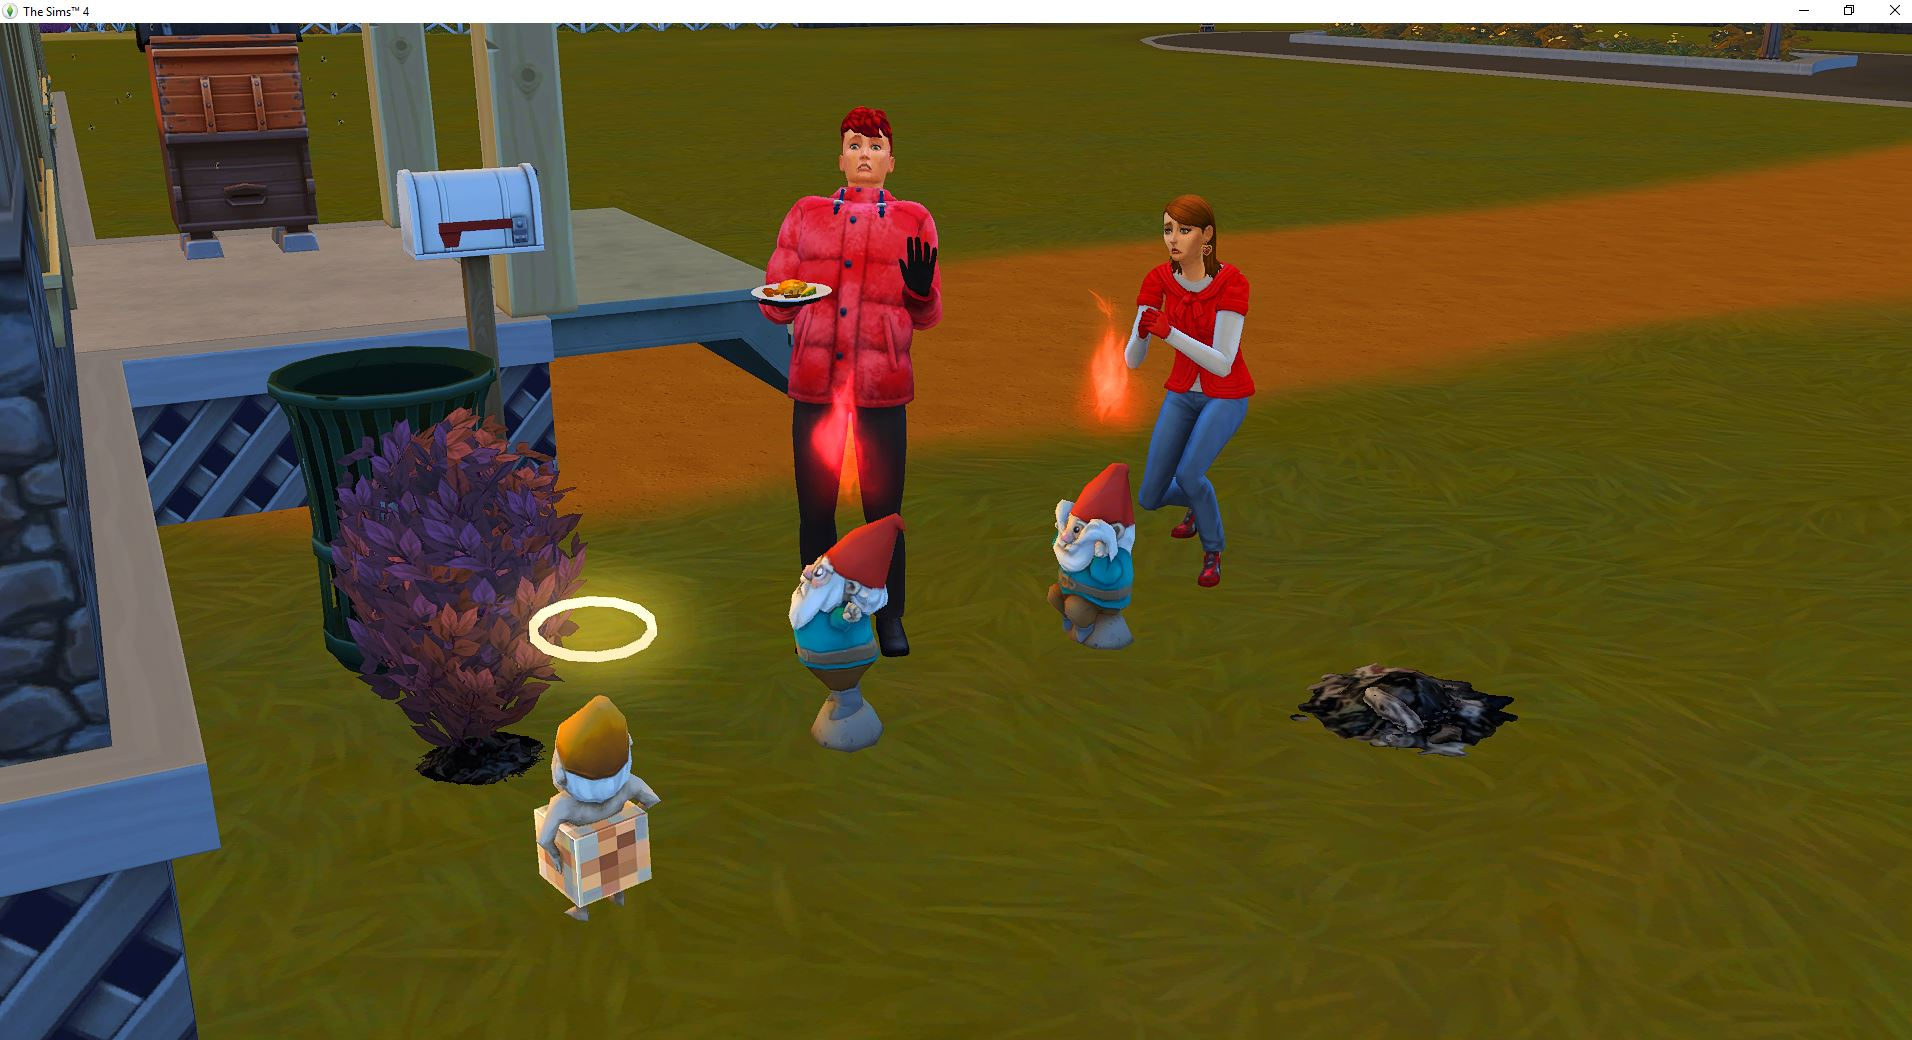 2019-01-04 20_39_18-The Sims™ 4